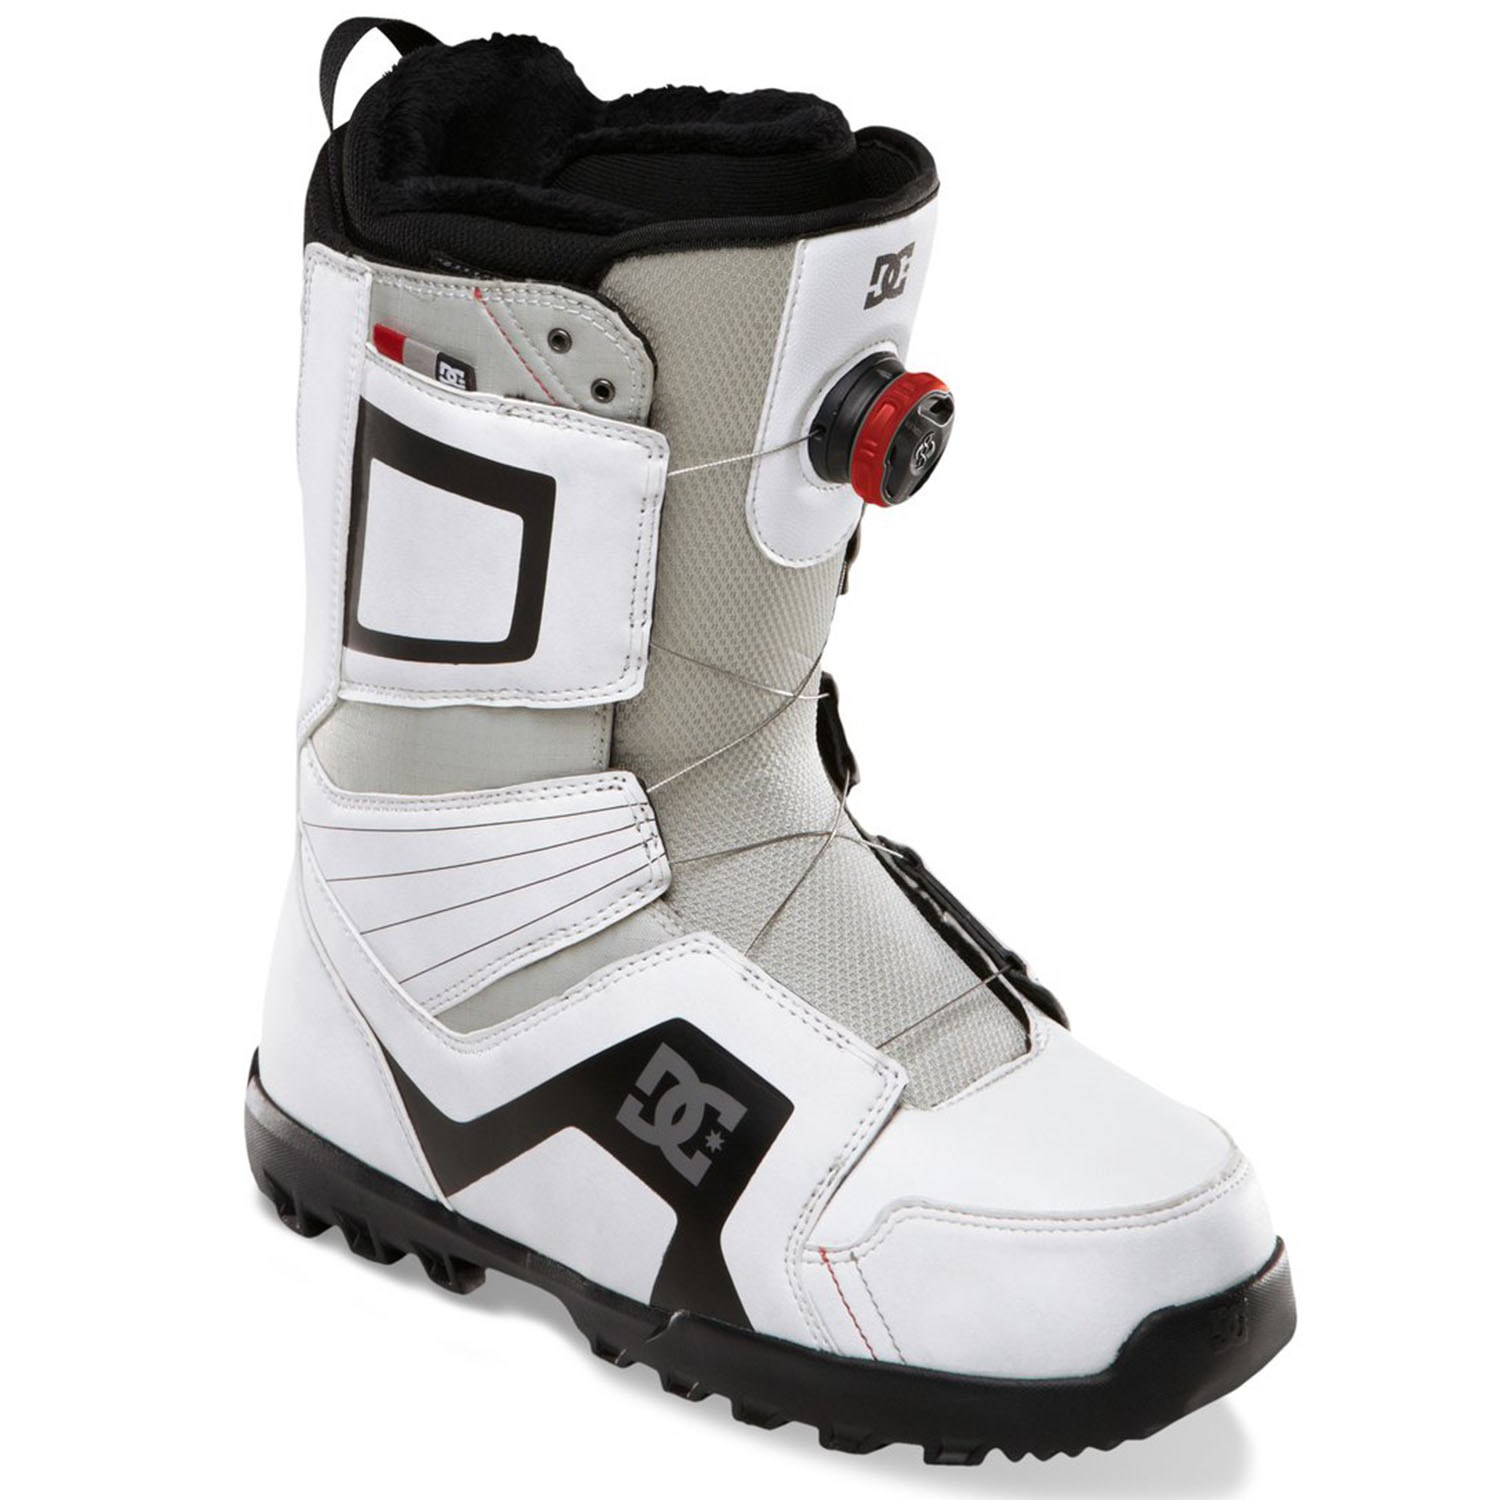 Womens Snowboard Boots dc Women's Scout Boa Snowboard